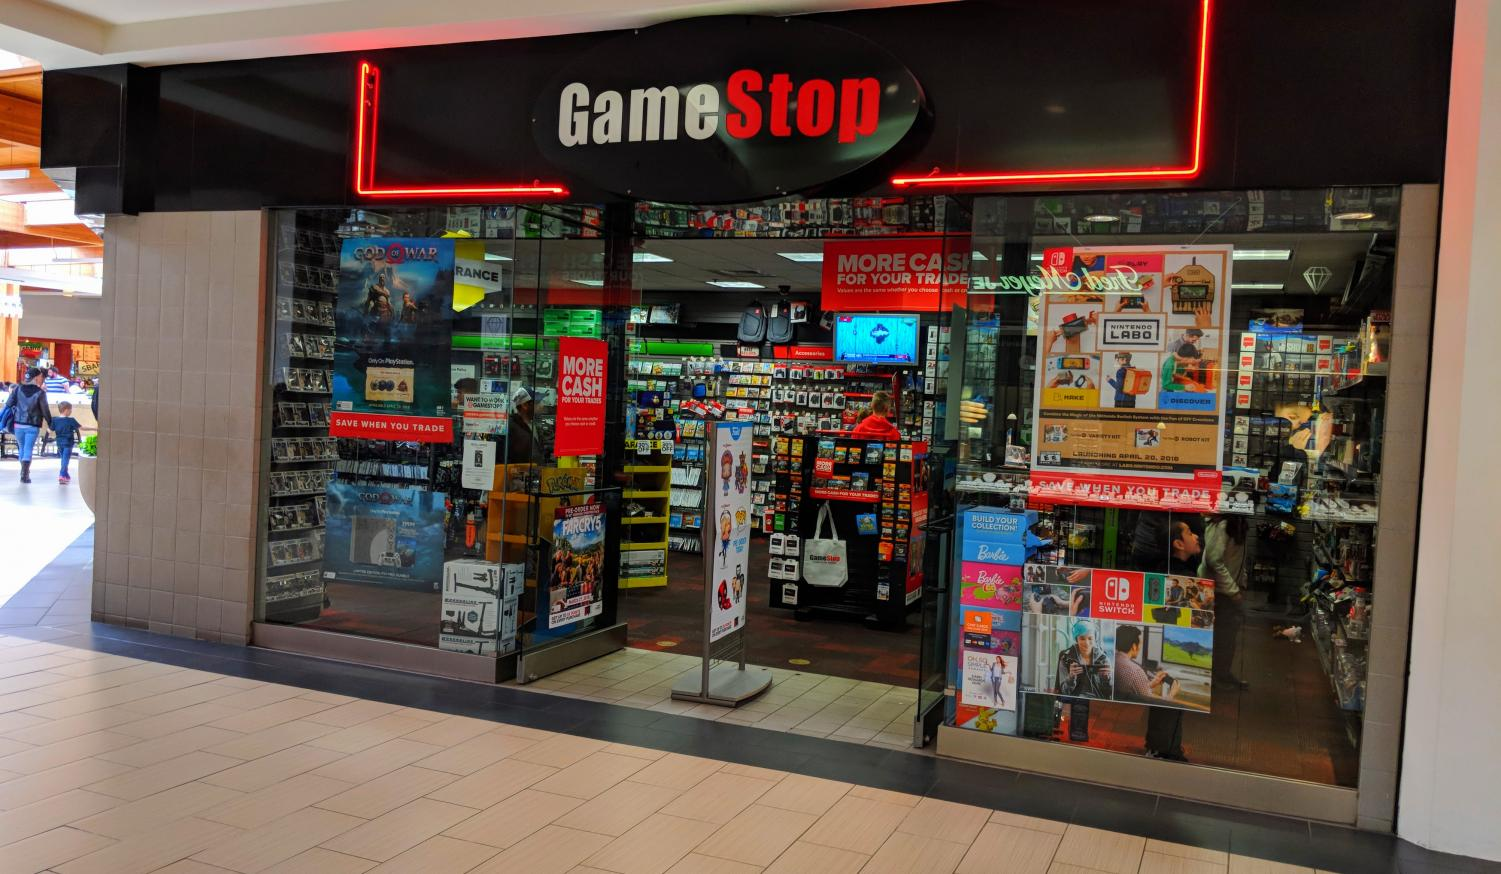 As individual traders purchased Gamestop shares, SJS students contributed their own capital towards the movement.